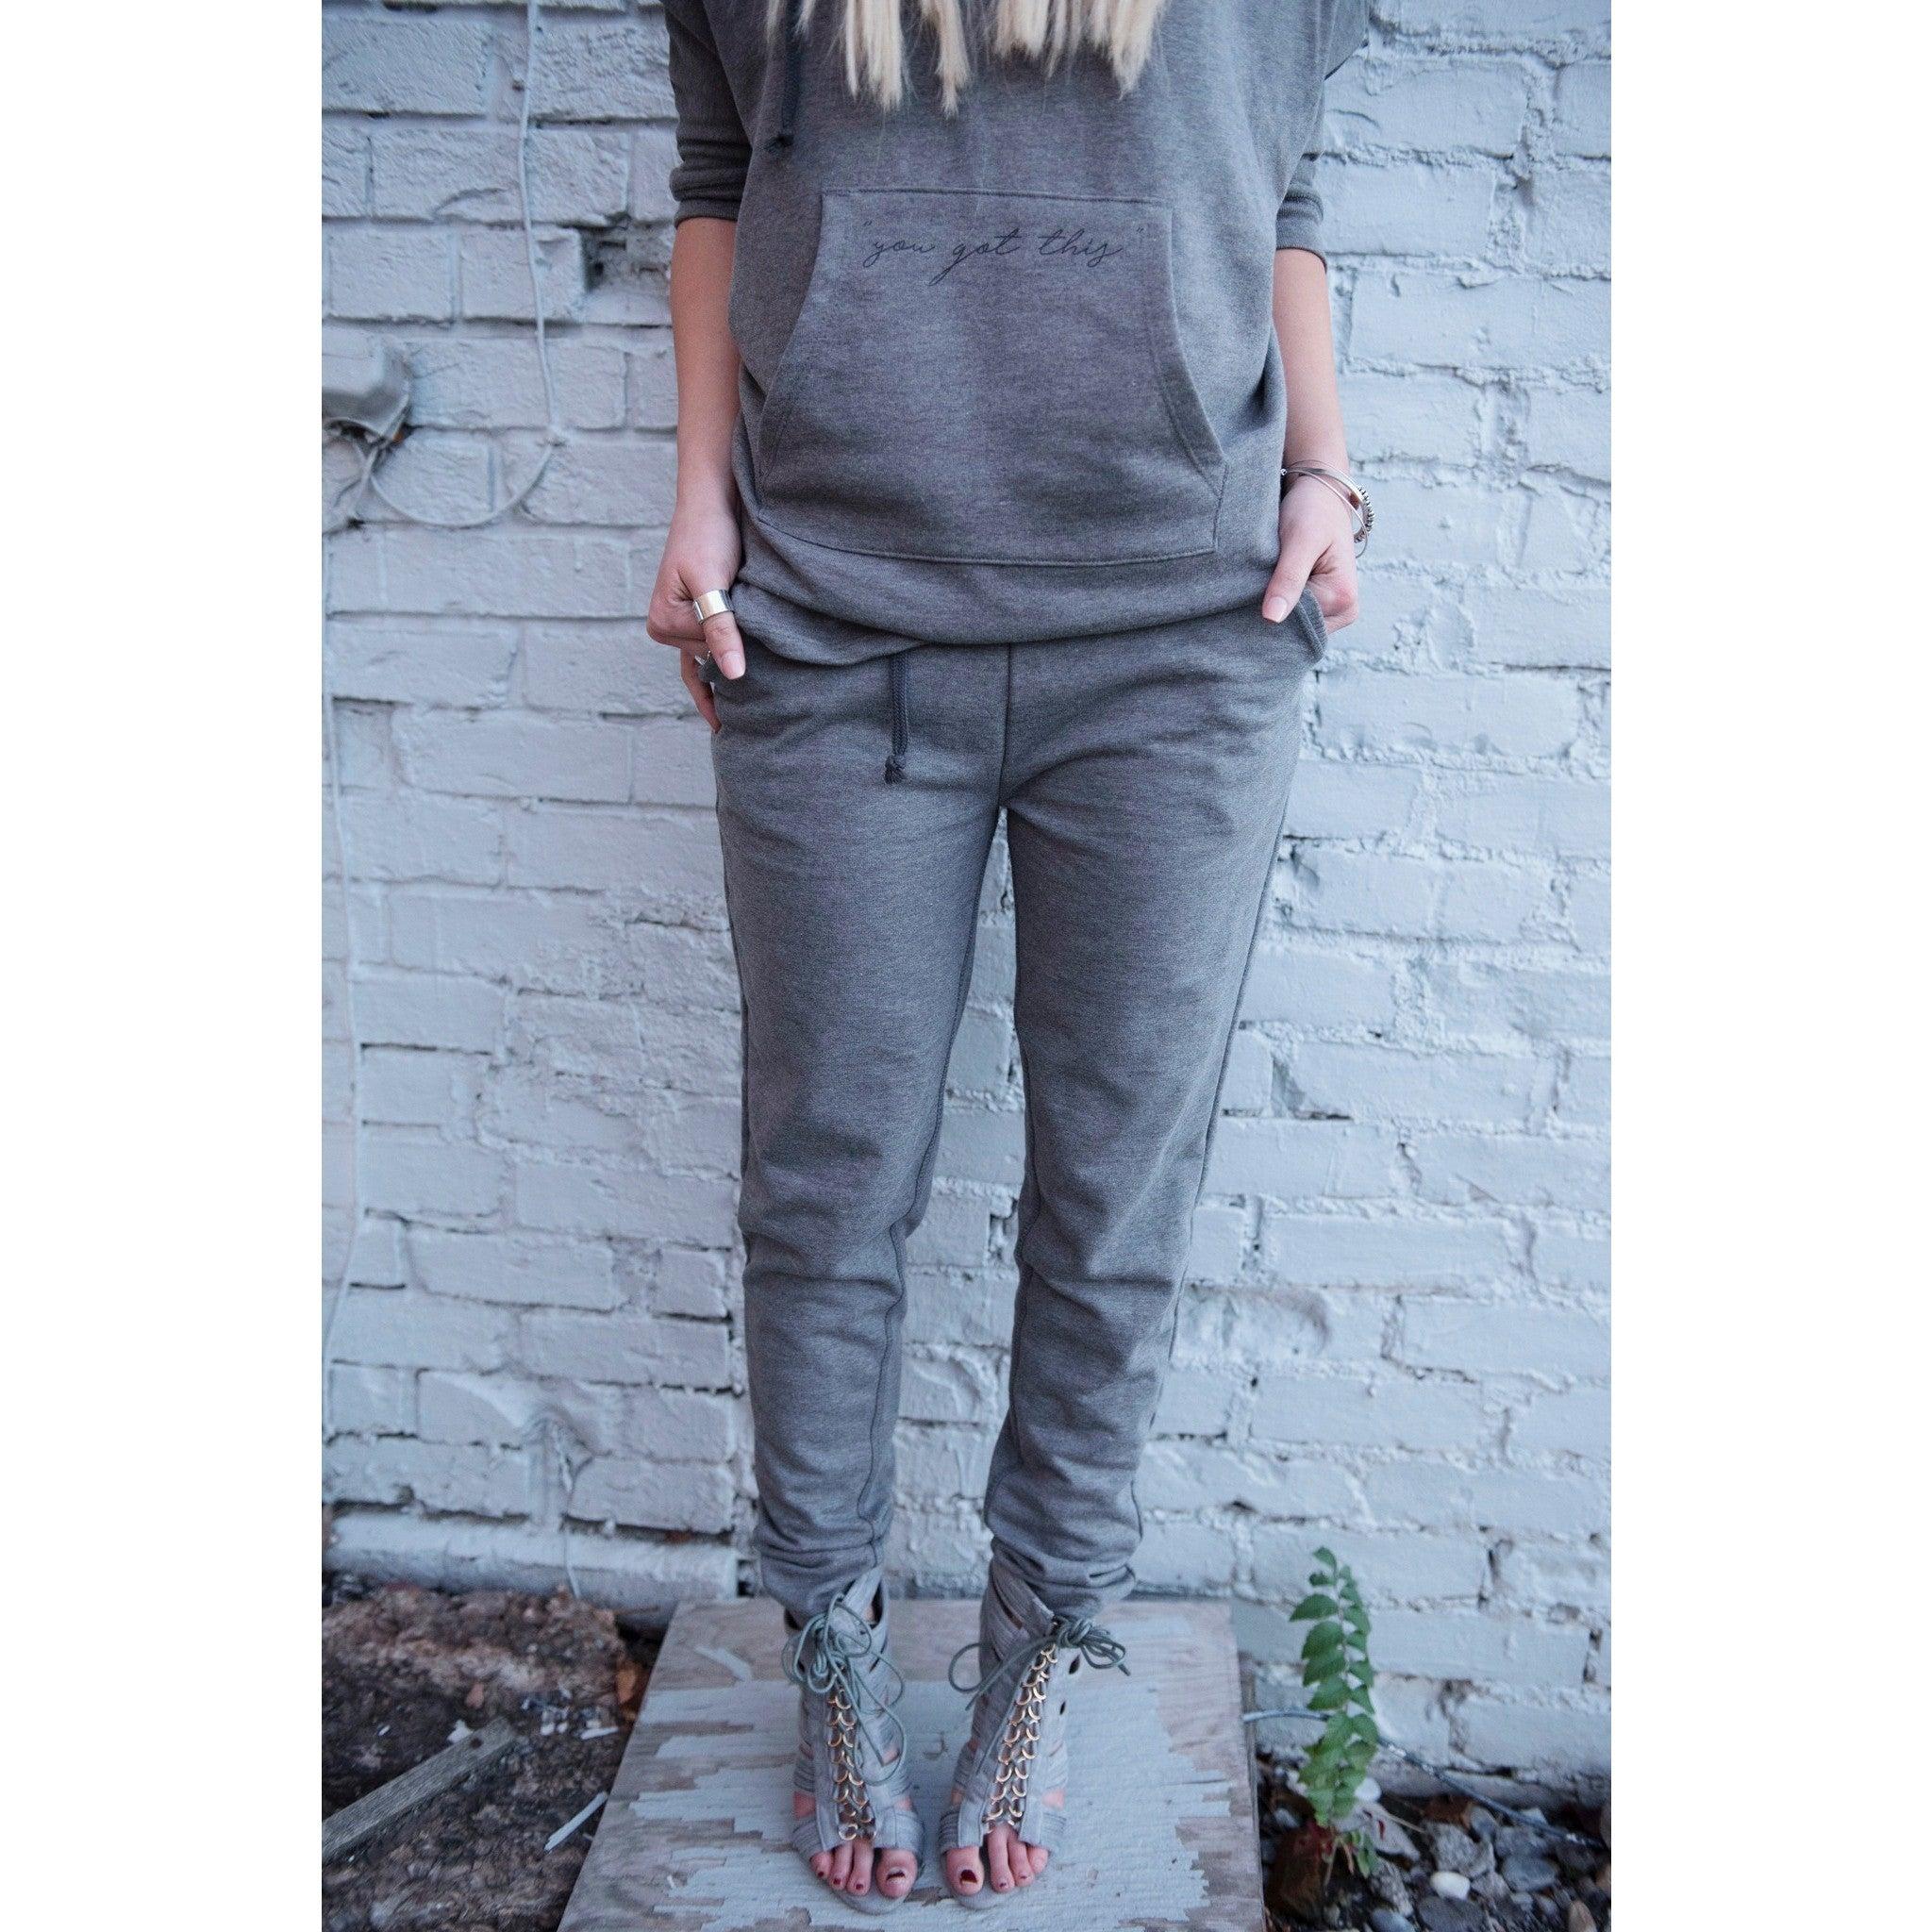 Vintage Sport Fitted Sweat Pants | Be Daring | by SIGNED NOELLE - DARING Collection by Noelle Nieporte  - 4